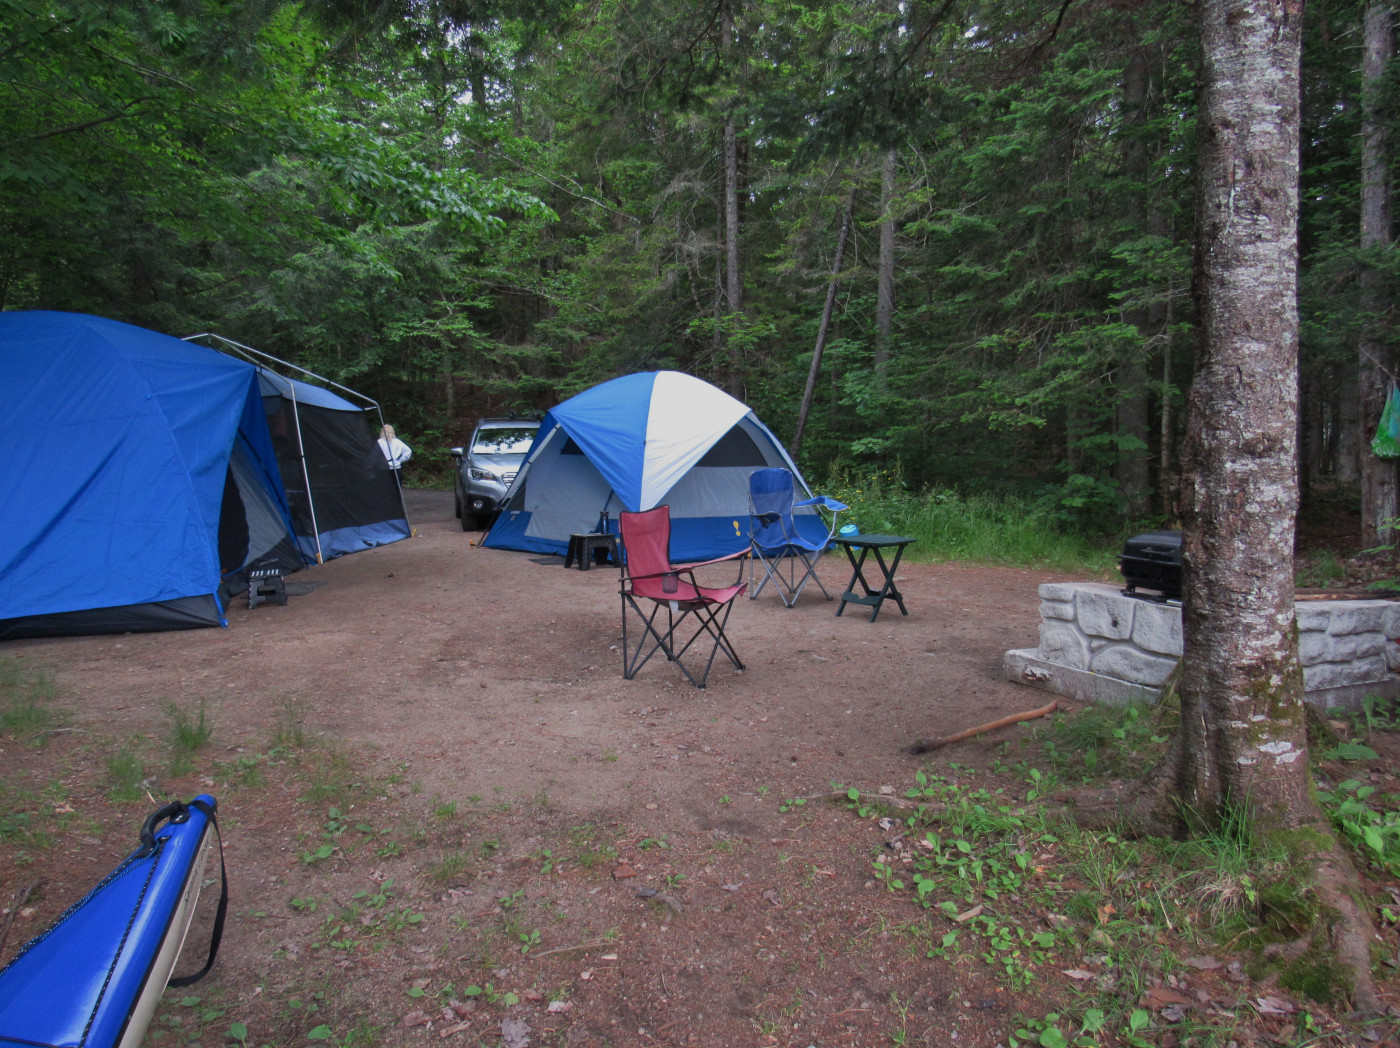 Finally camp set-up is done! Time for apps!